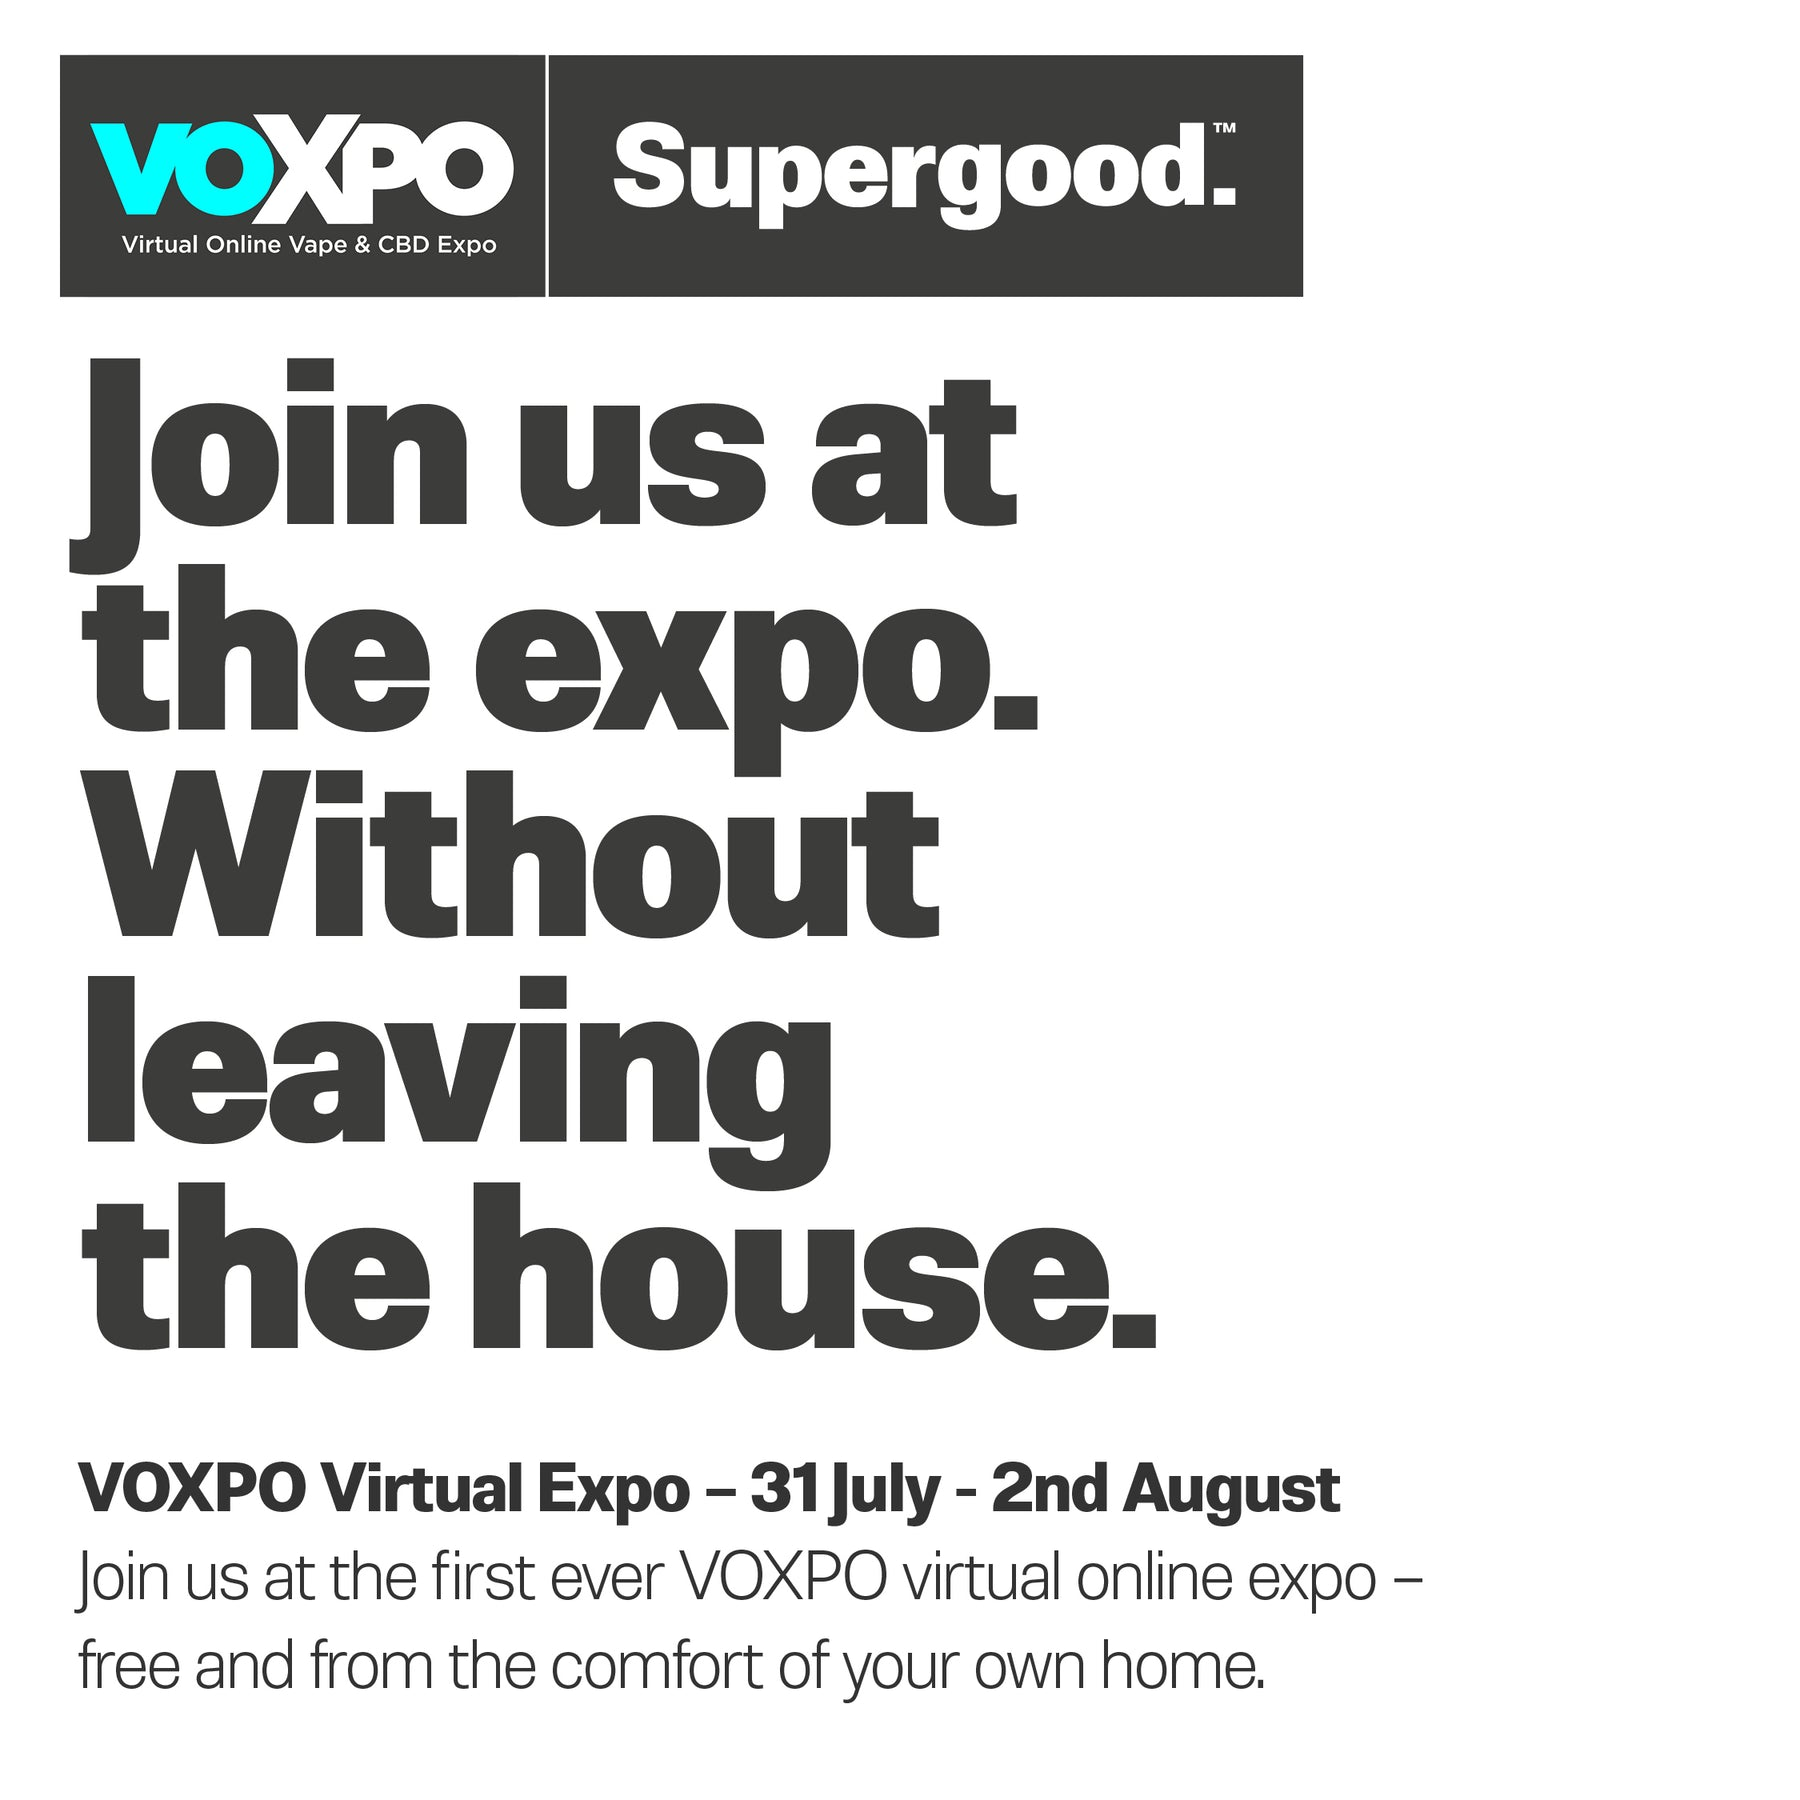 Join us at the expo. Without leaving the house.